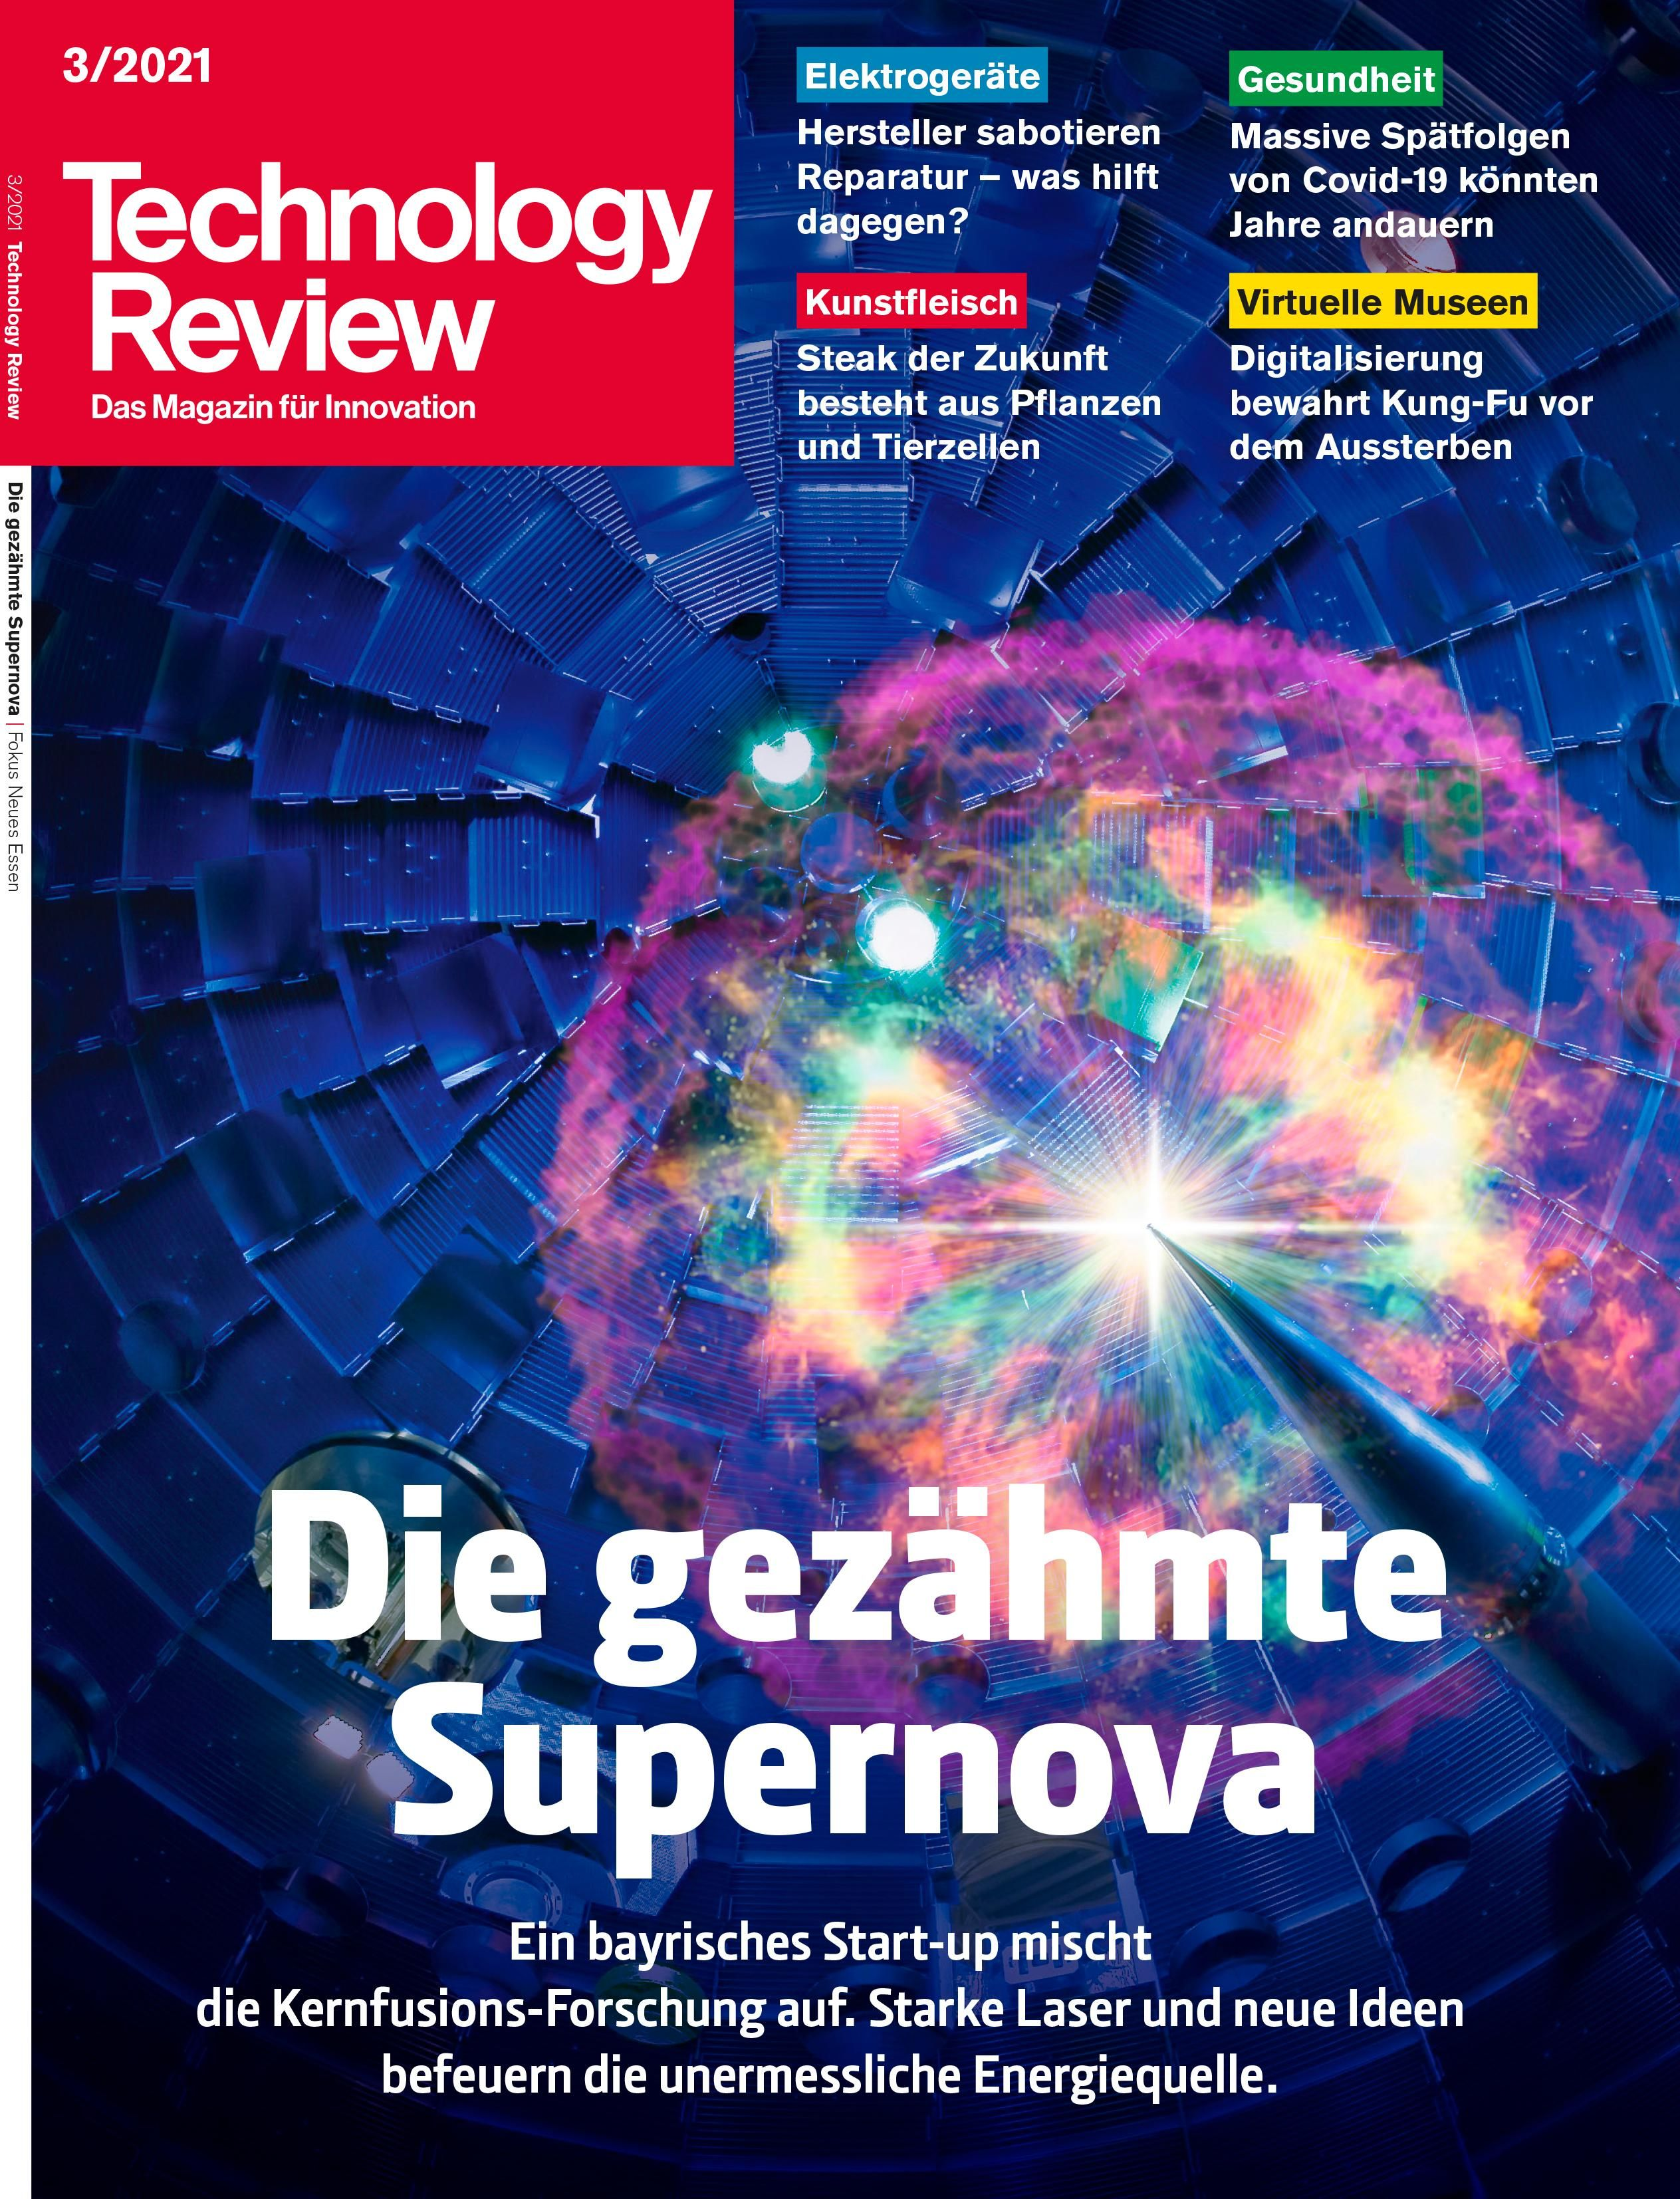 Technology Review 03/2021